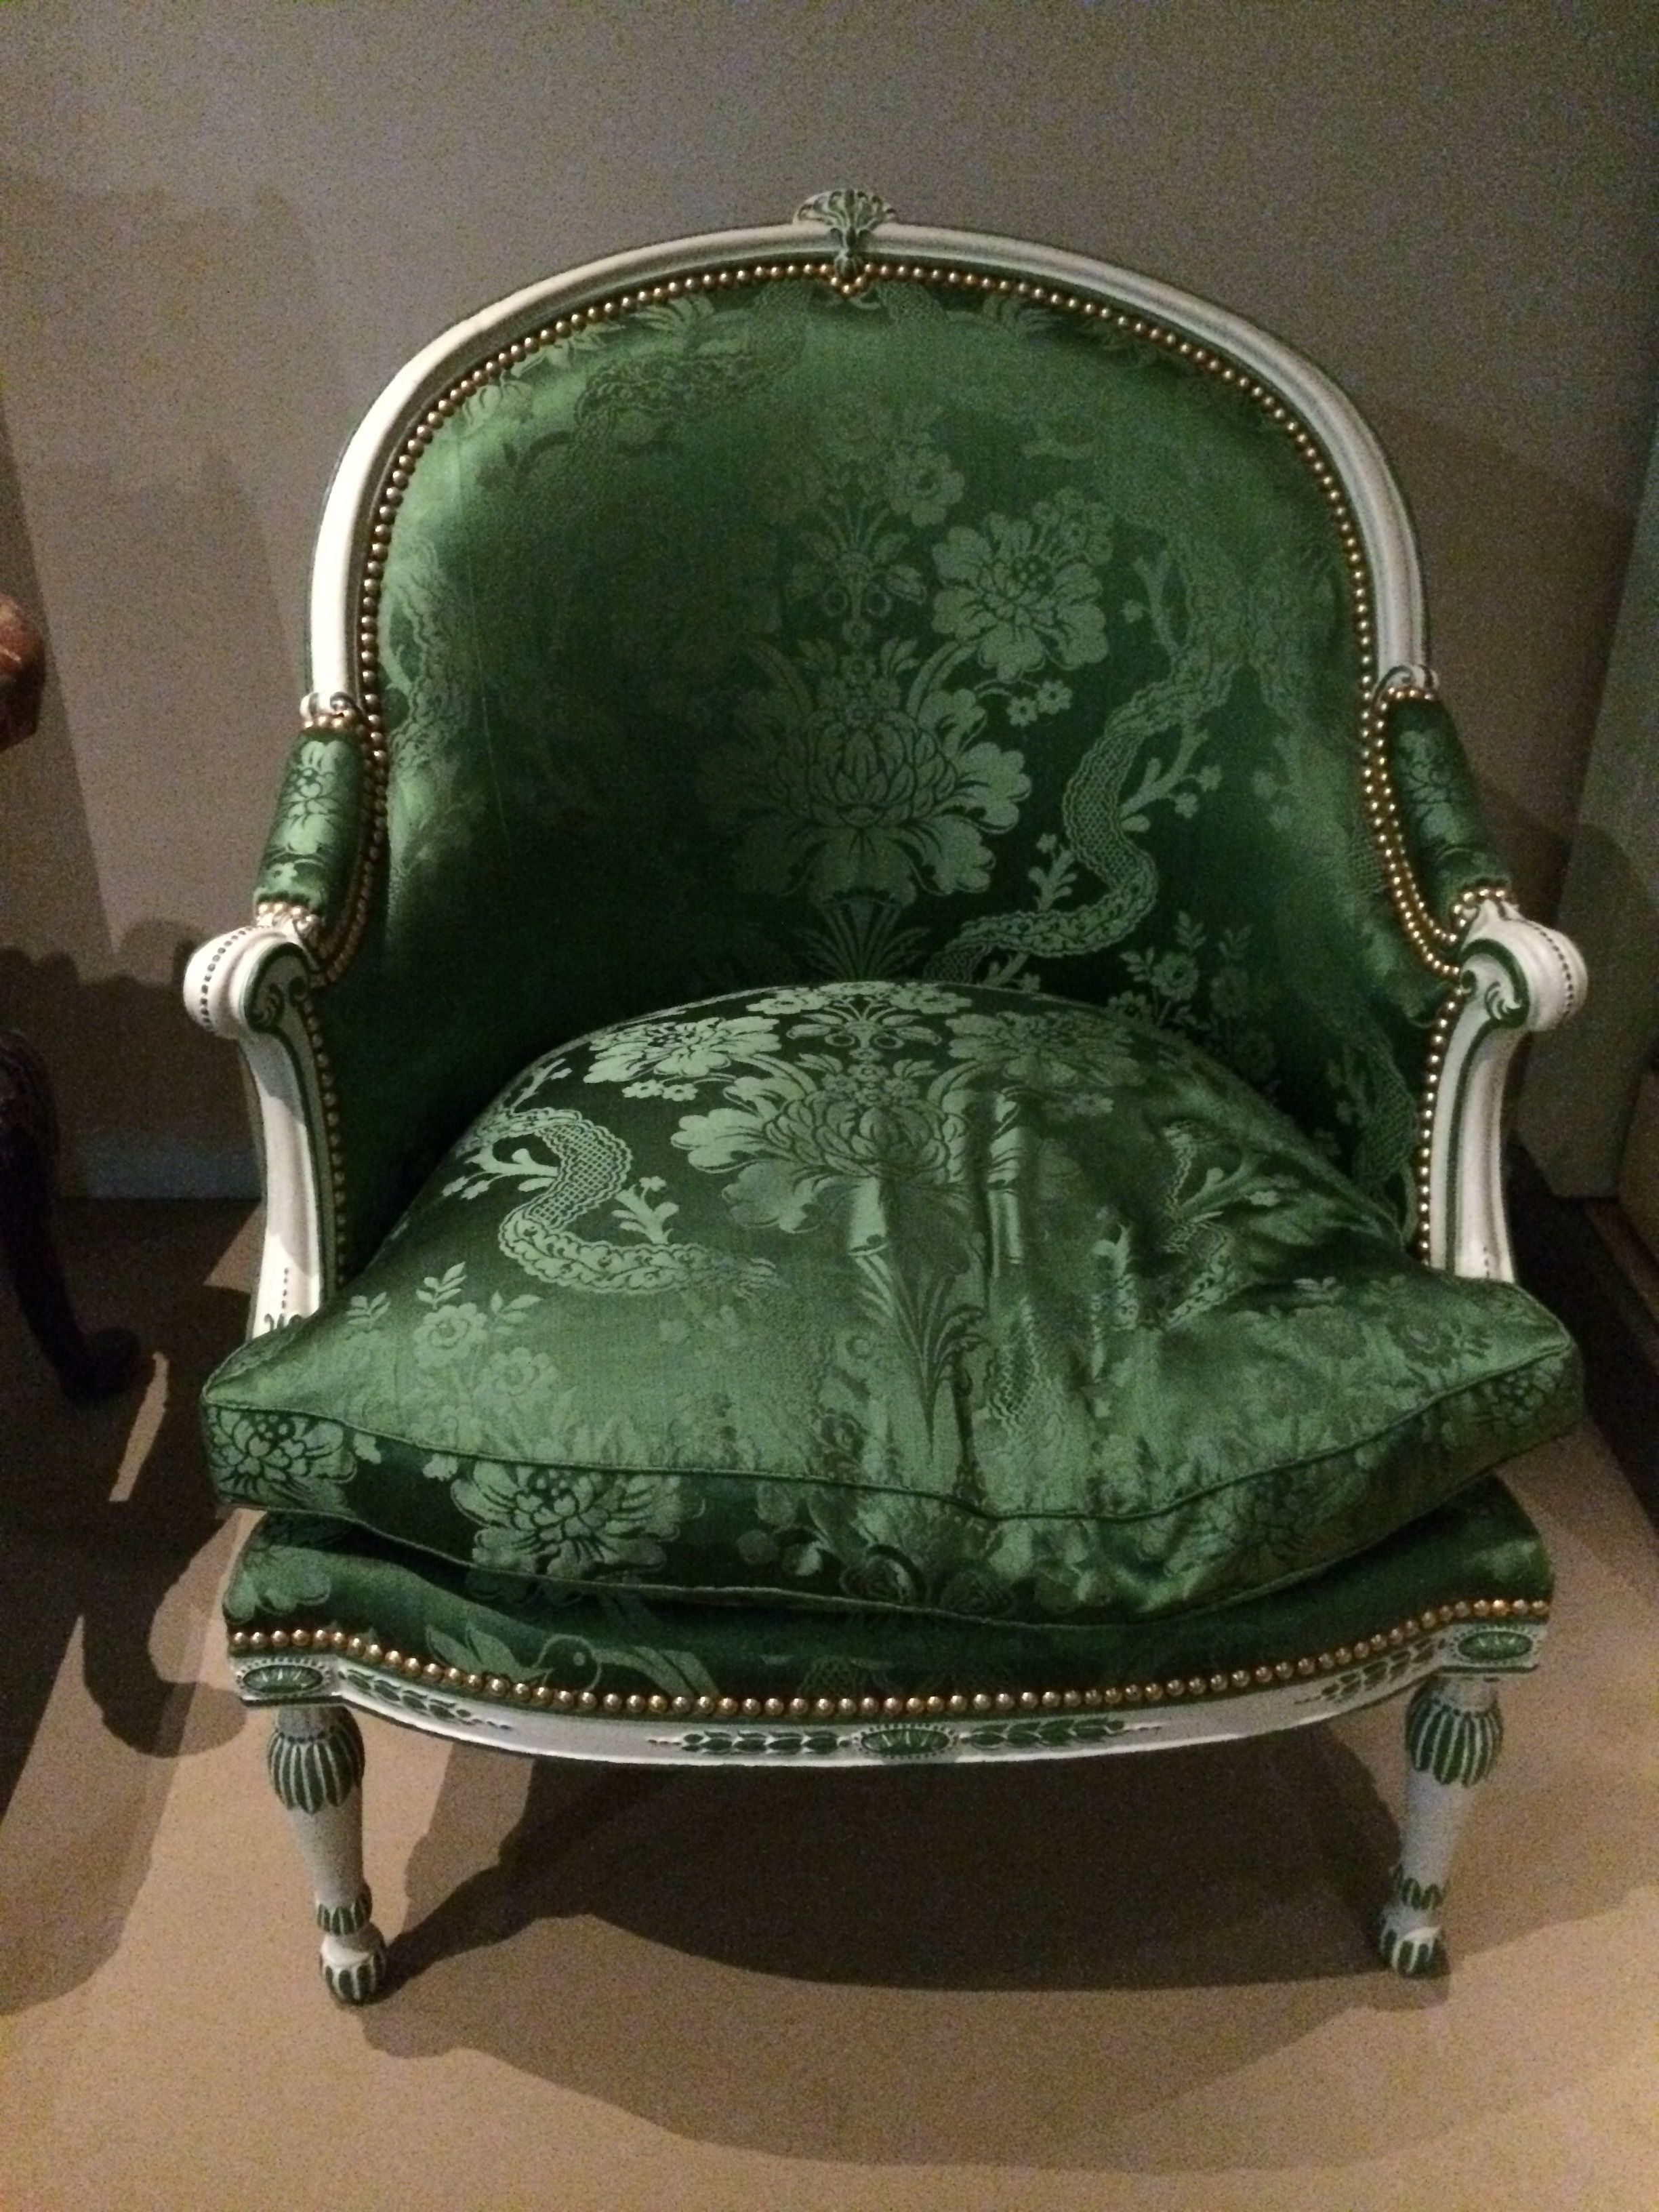 Fauteuils Chippendale French Style Bergere Chair Made By Thomas Chippendale In London